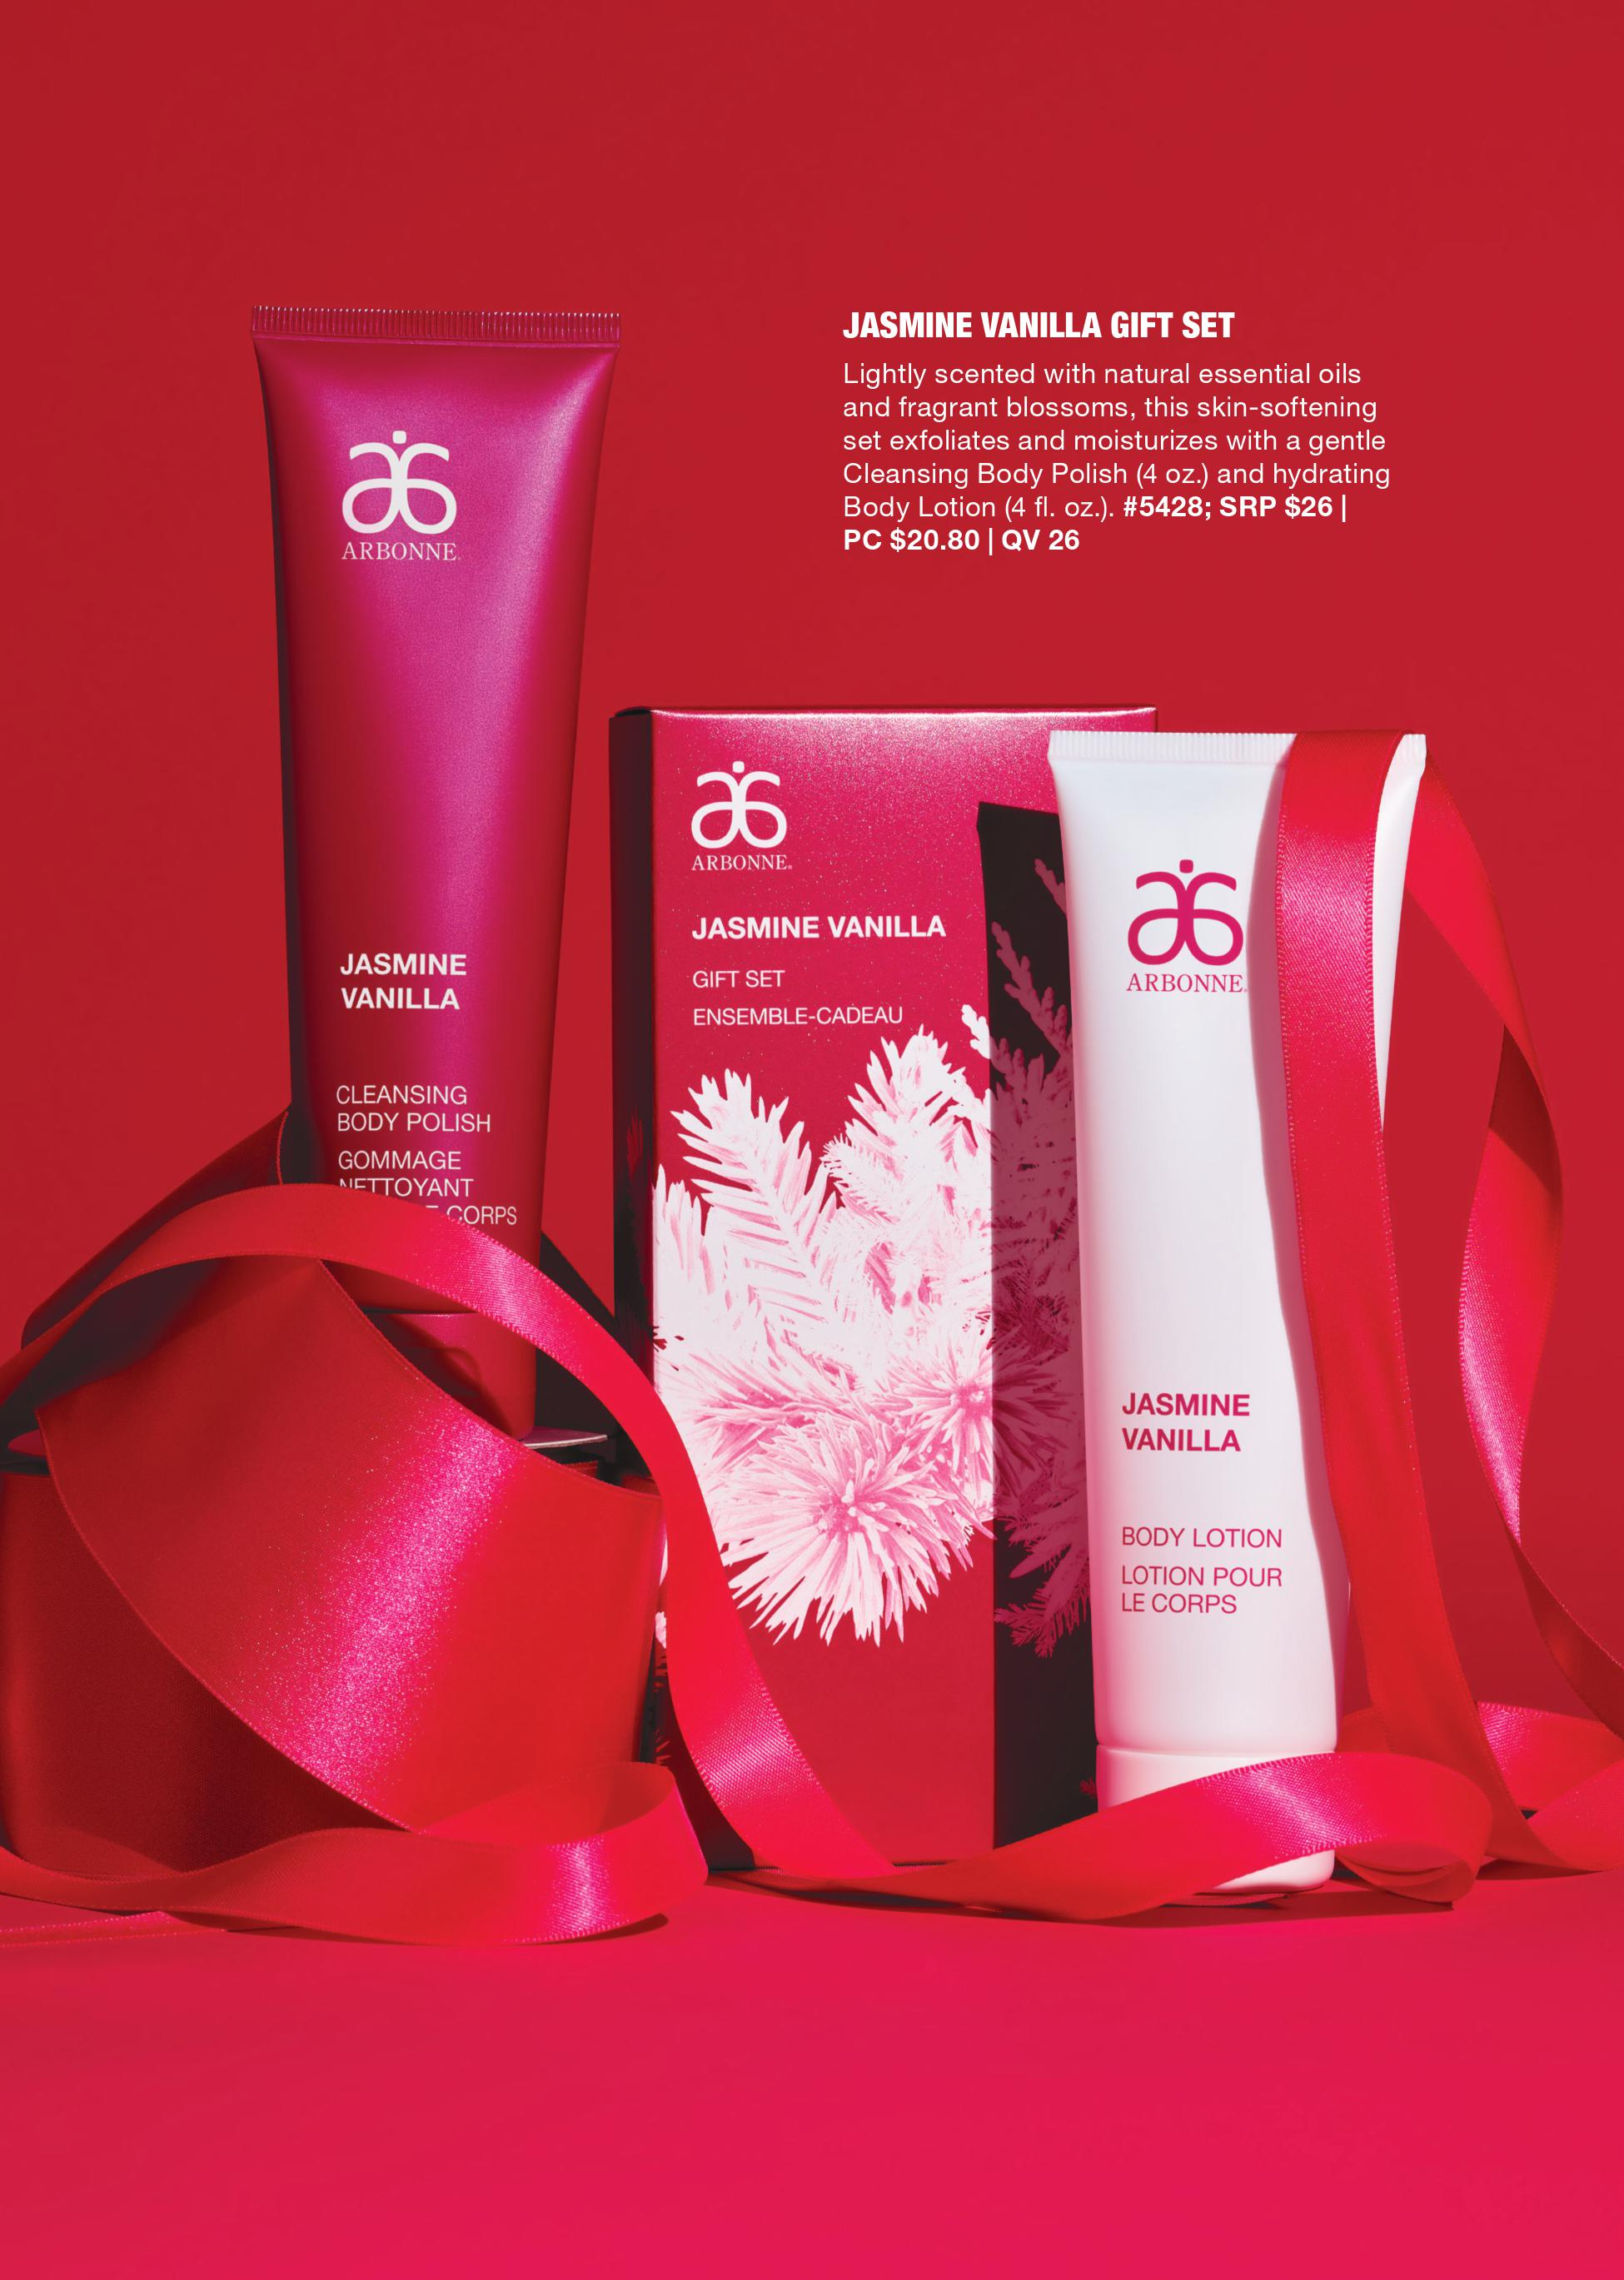 arbonne holiday jasmine vanilla gift set